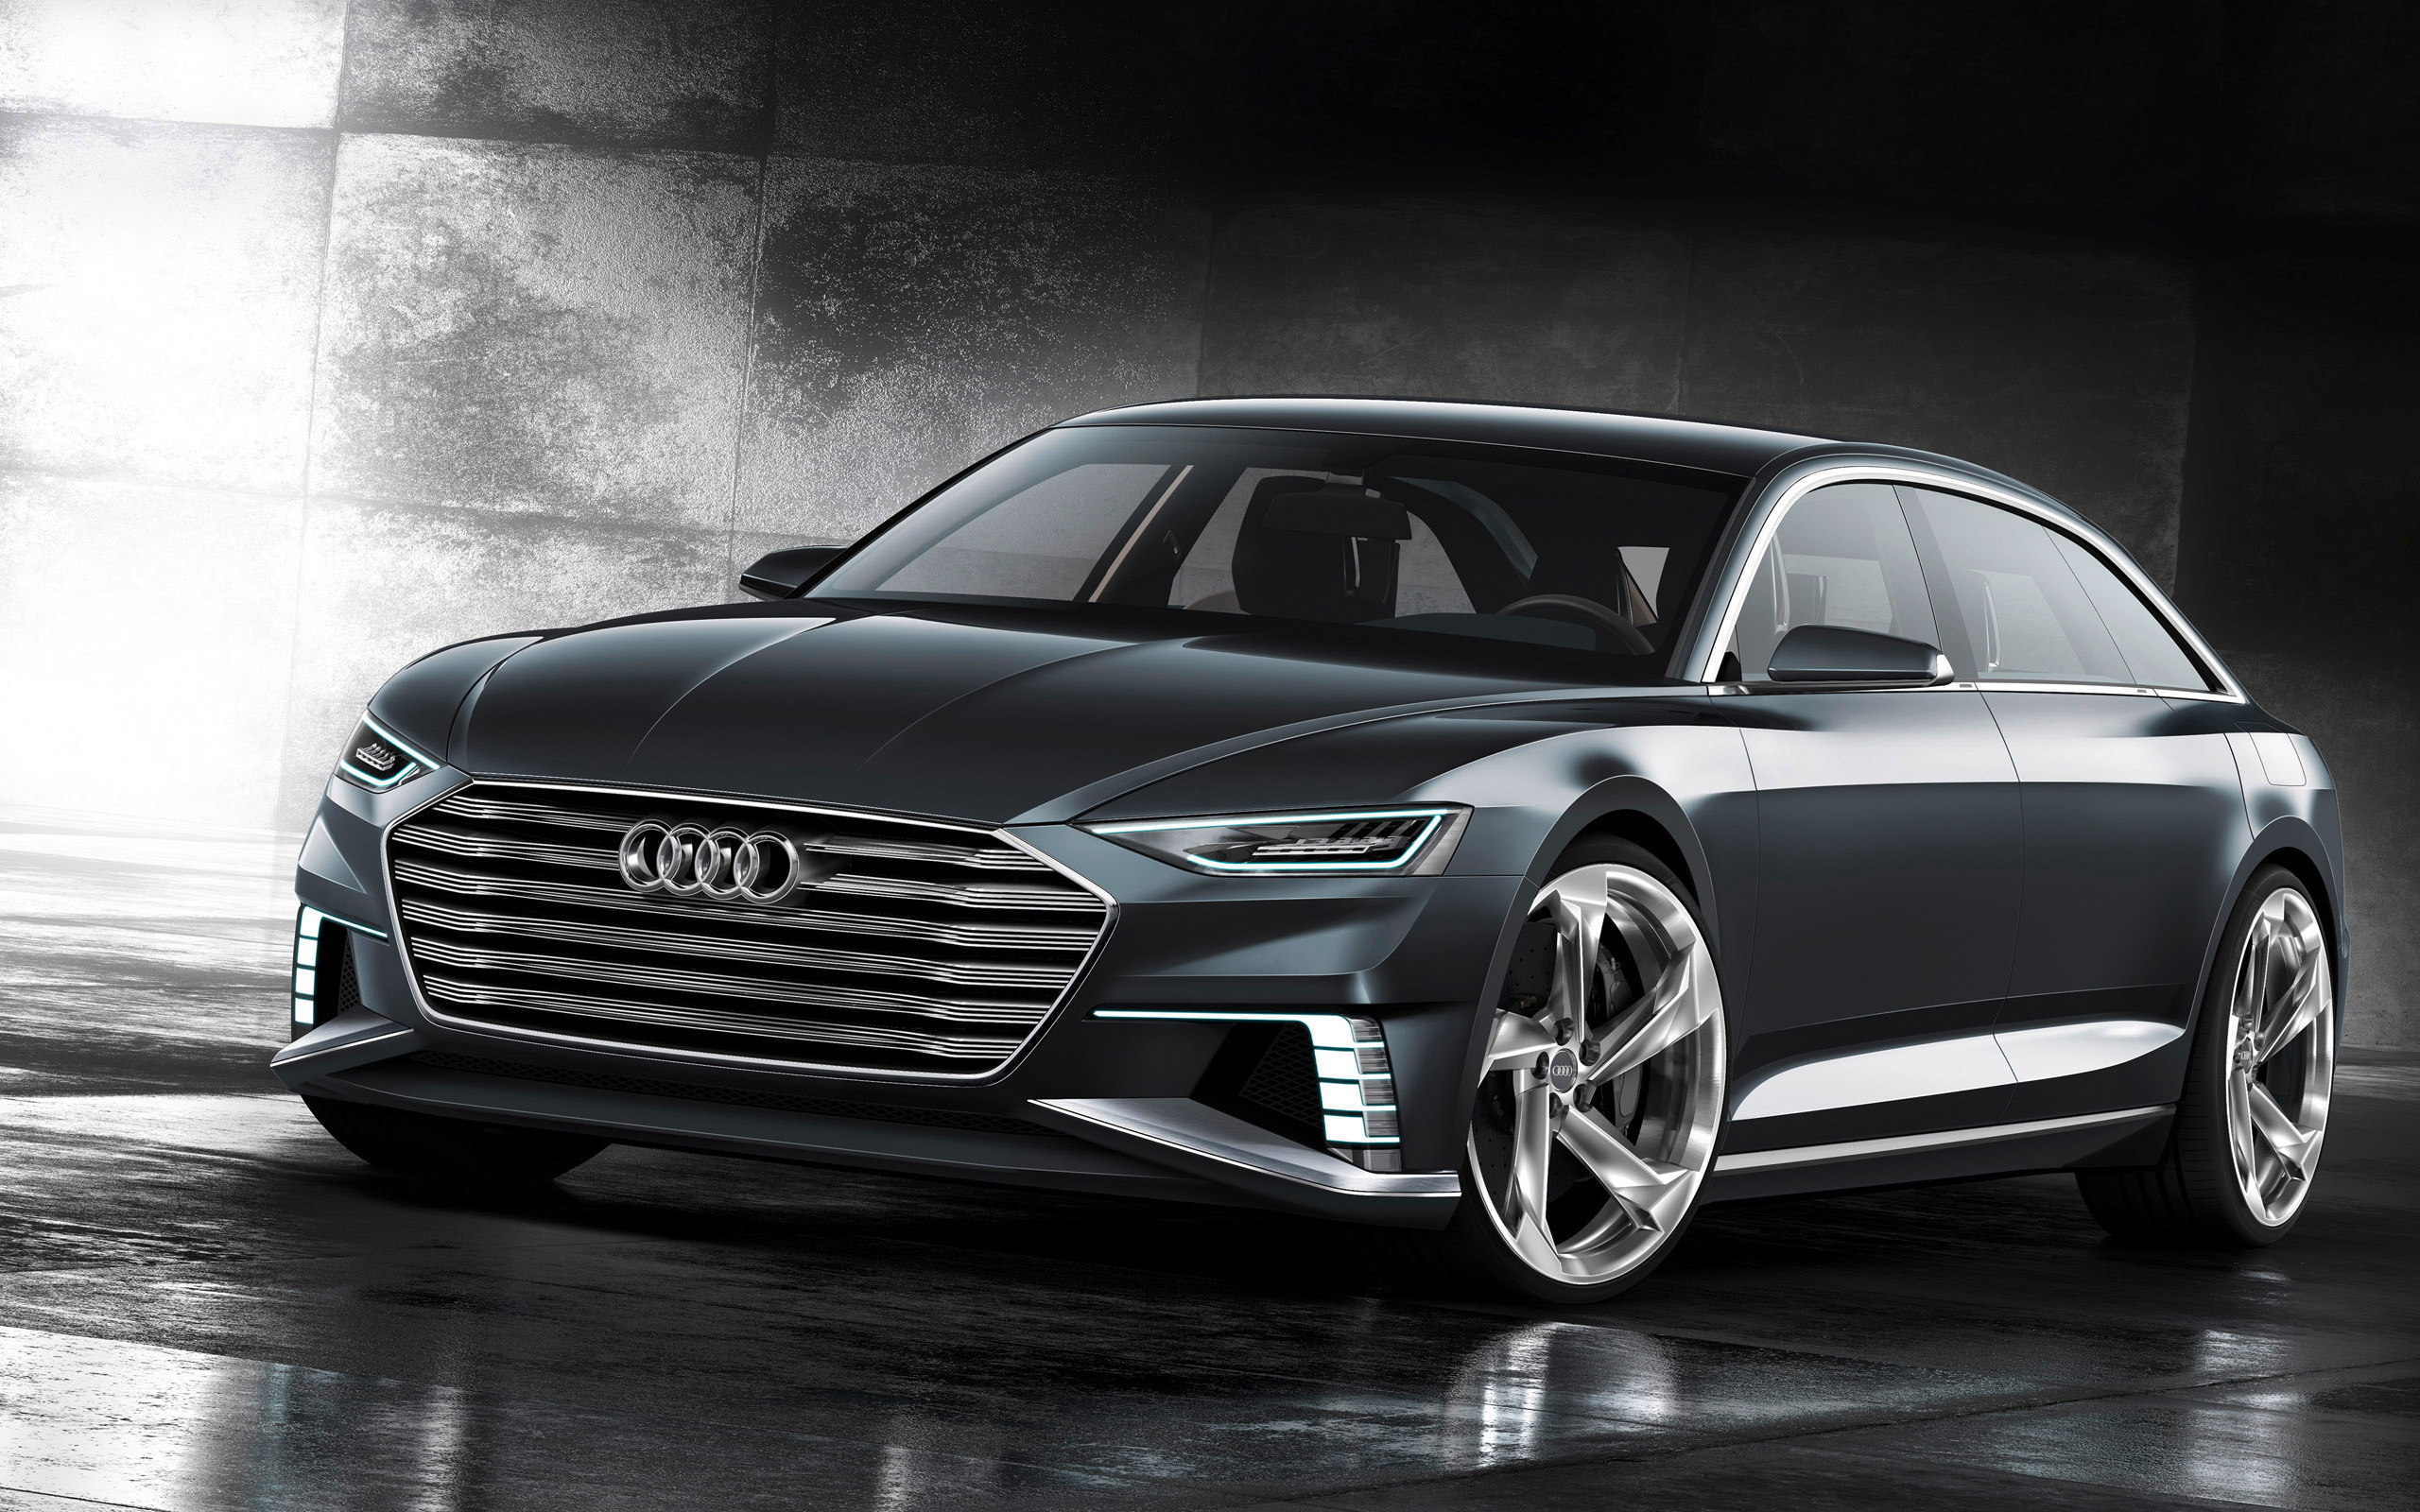 HD Wallpapers 2015 Audi Prologue Avant Concept